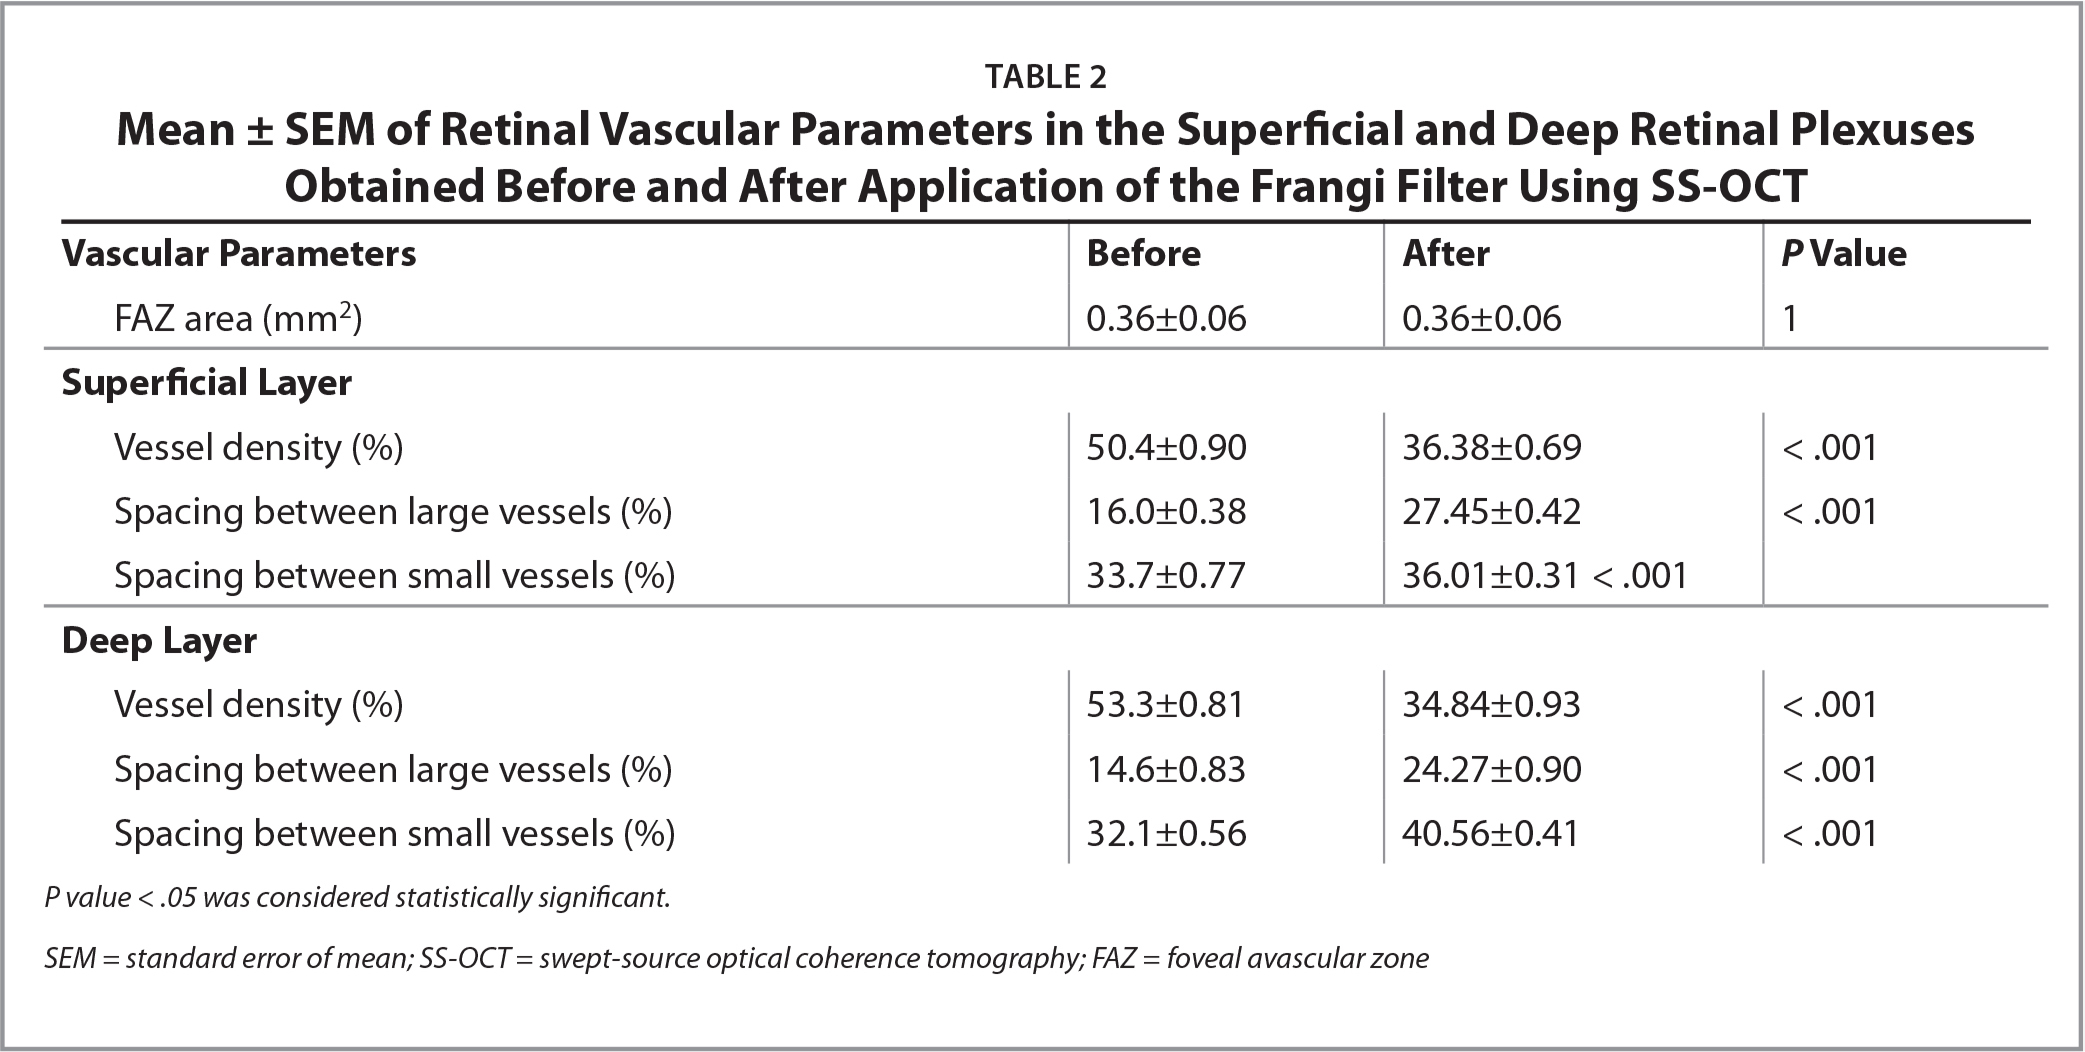 Mean ± SEM of Retinal Vascular Parameters in the Superficial and Deep Retinal Plexuses Obtained Before and After Application of the Frangi Filter Using SS-OCT